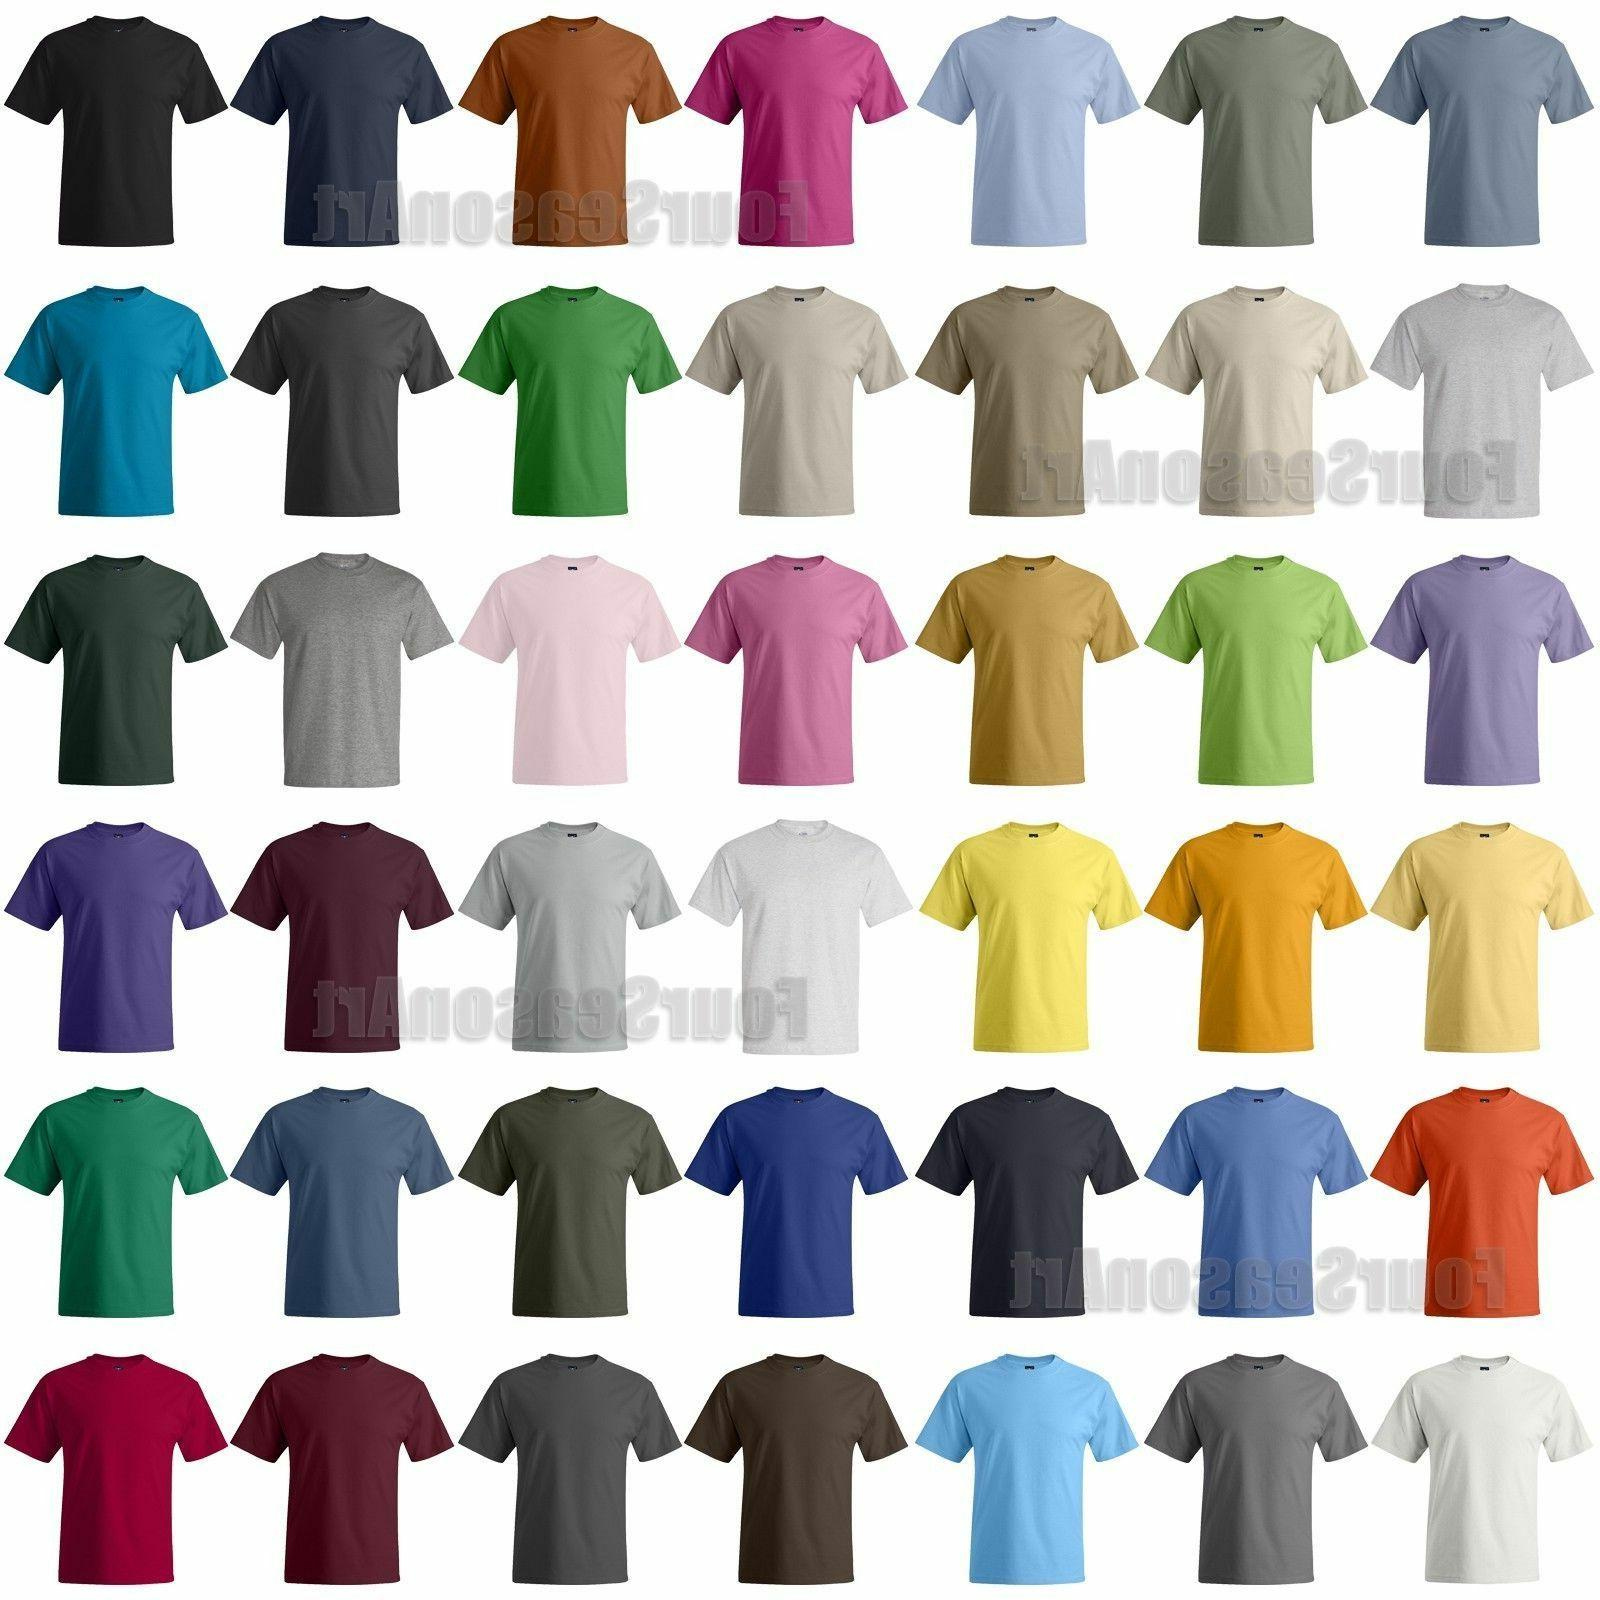 Hanes Mens Beefy T-Shirt 100% Cotton Tag free Tee sizes S -